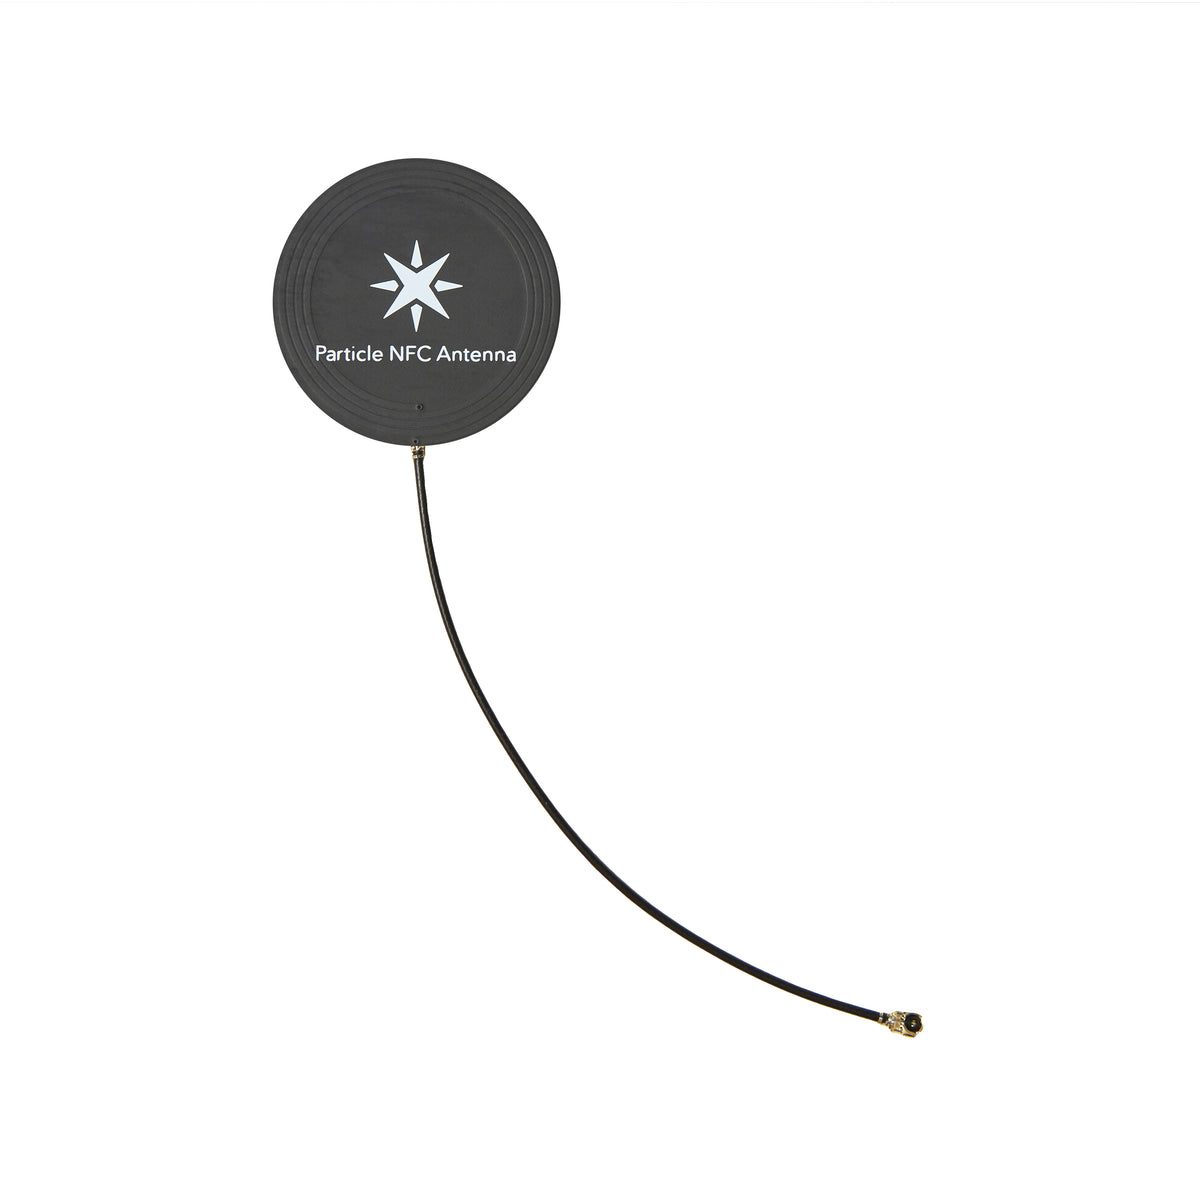 NFC Antenna (13 56 MHz) – Particle Retail